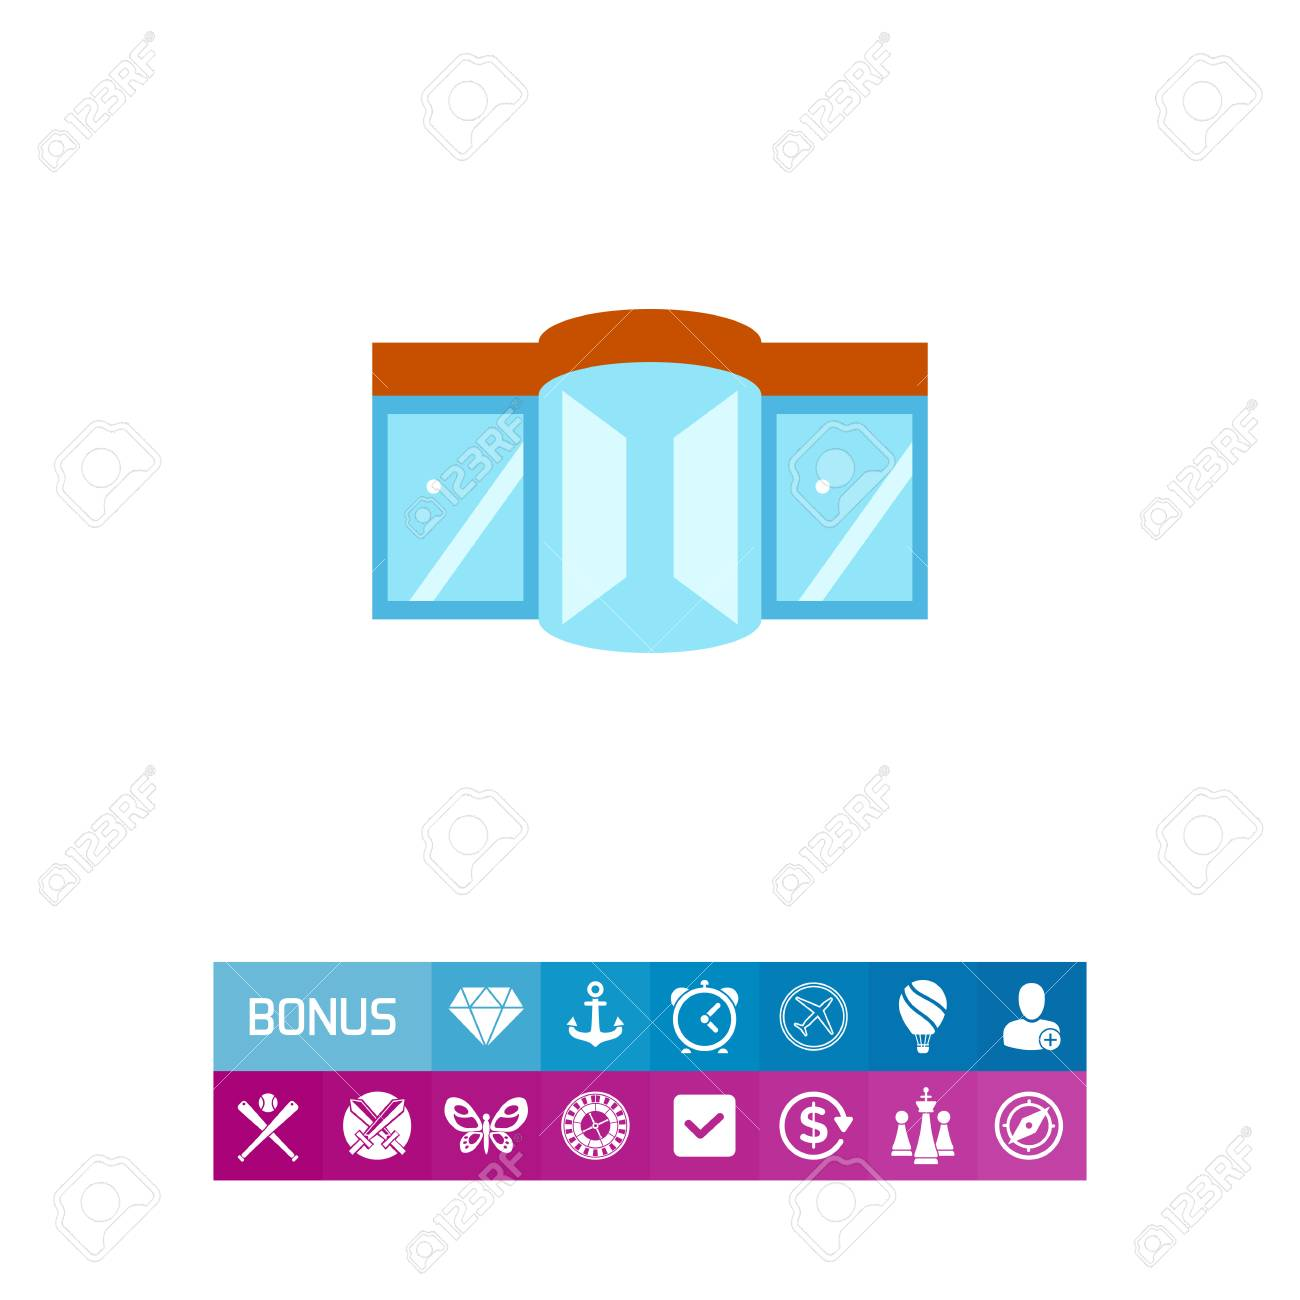 Shopping Mall stock vector. Illustration of cafe, sale - 23255853